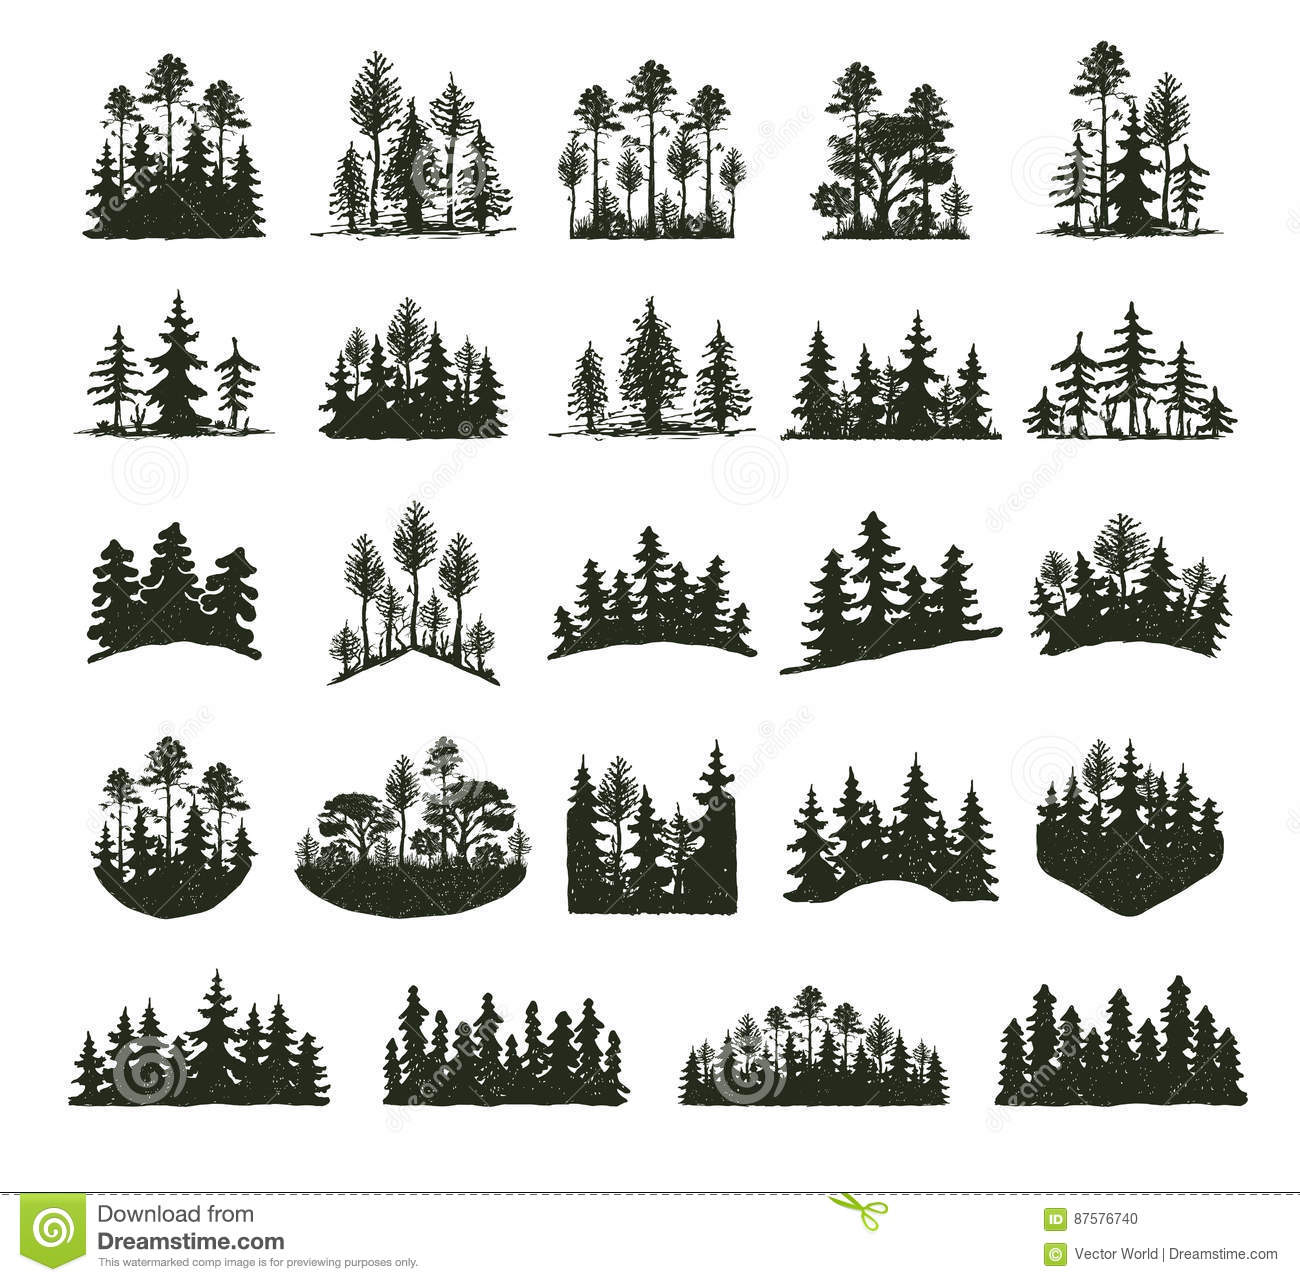 Download Tree Outdoor Travel Black Silhouette Coniferous Natural Badges, Tops Pine Spruce Branch Cedar And Plant Leaf Abstract Stock Vector - Illustration of evergreen, banners: 87576740